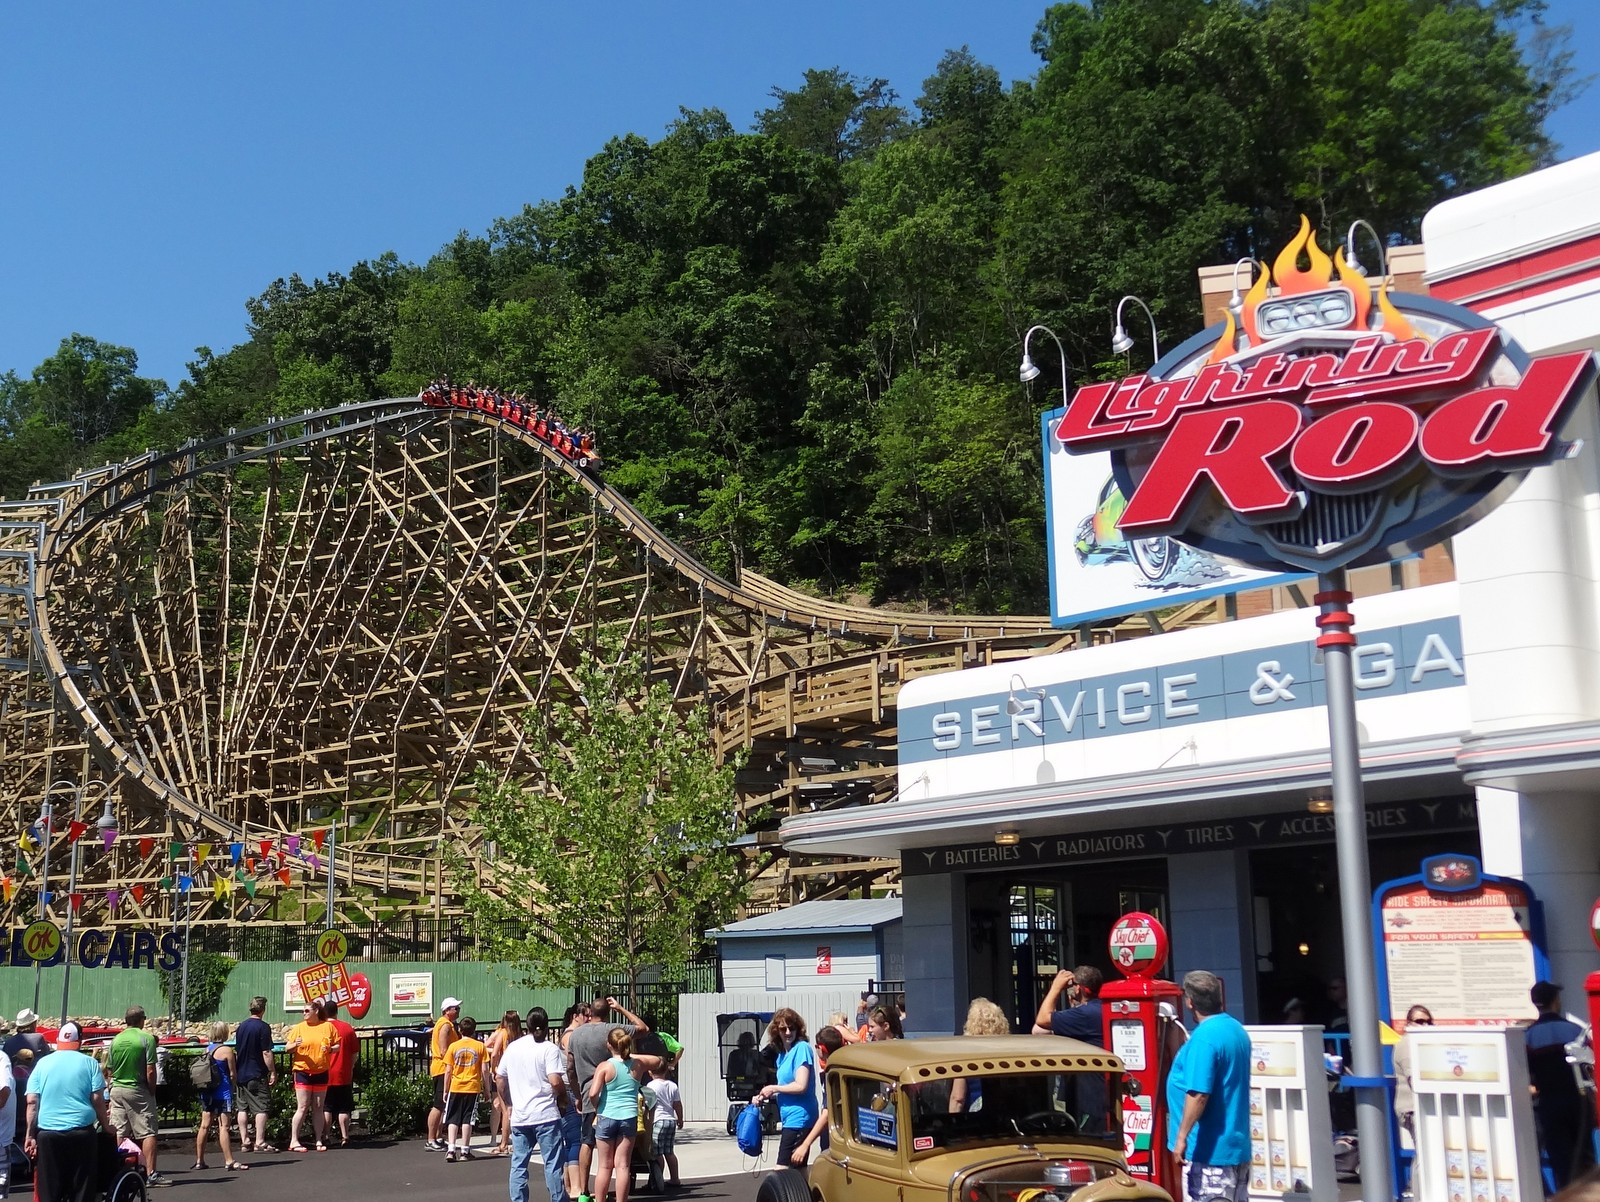 Lightning Rod Review Dollywood Launched Wooden Coaster Coaster101